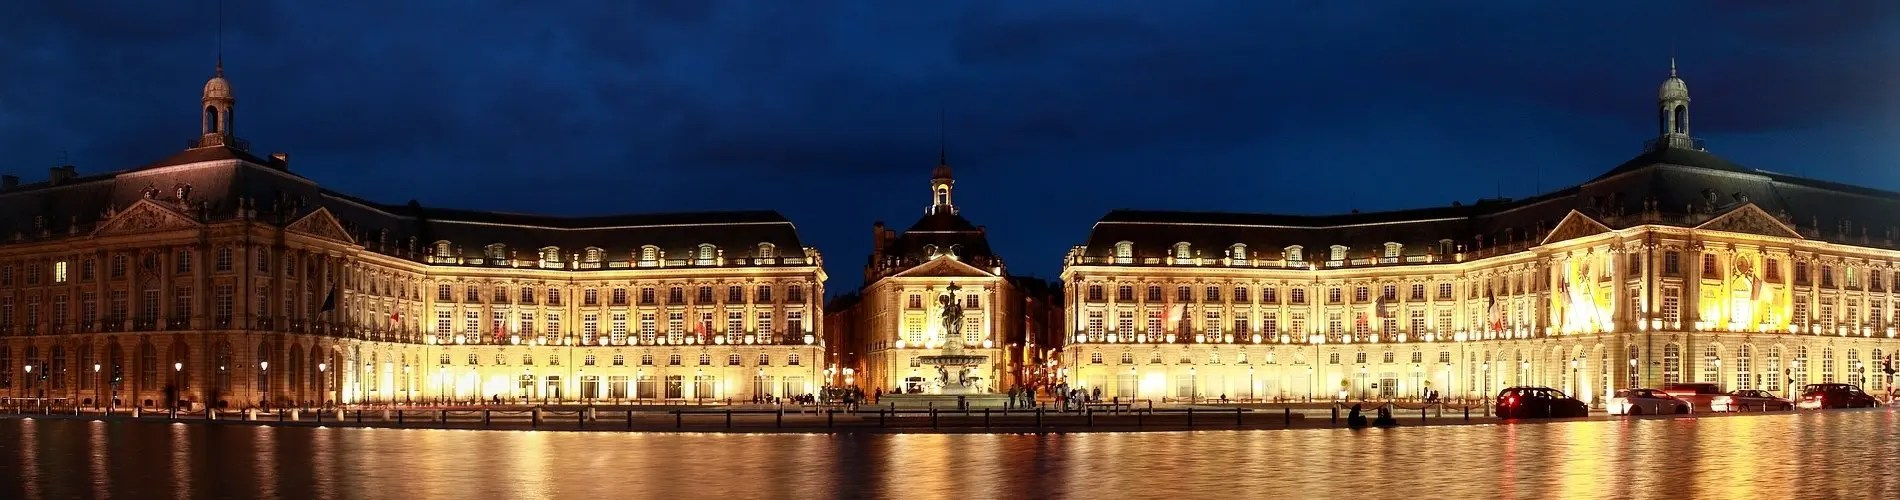 Bordeaux city by night